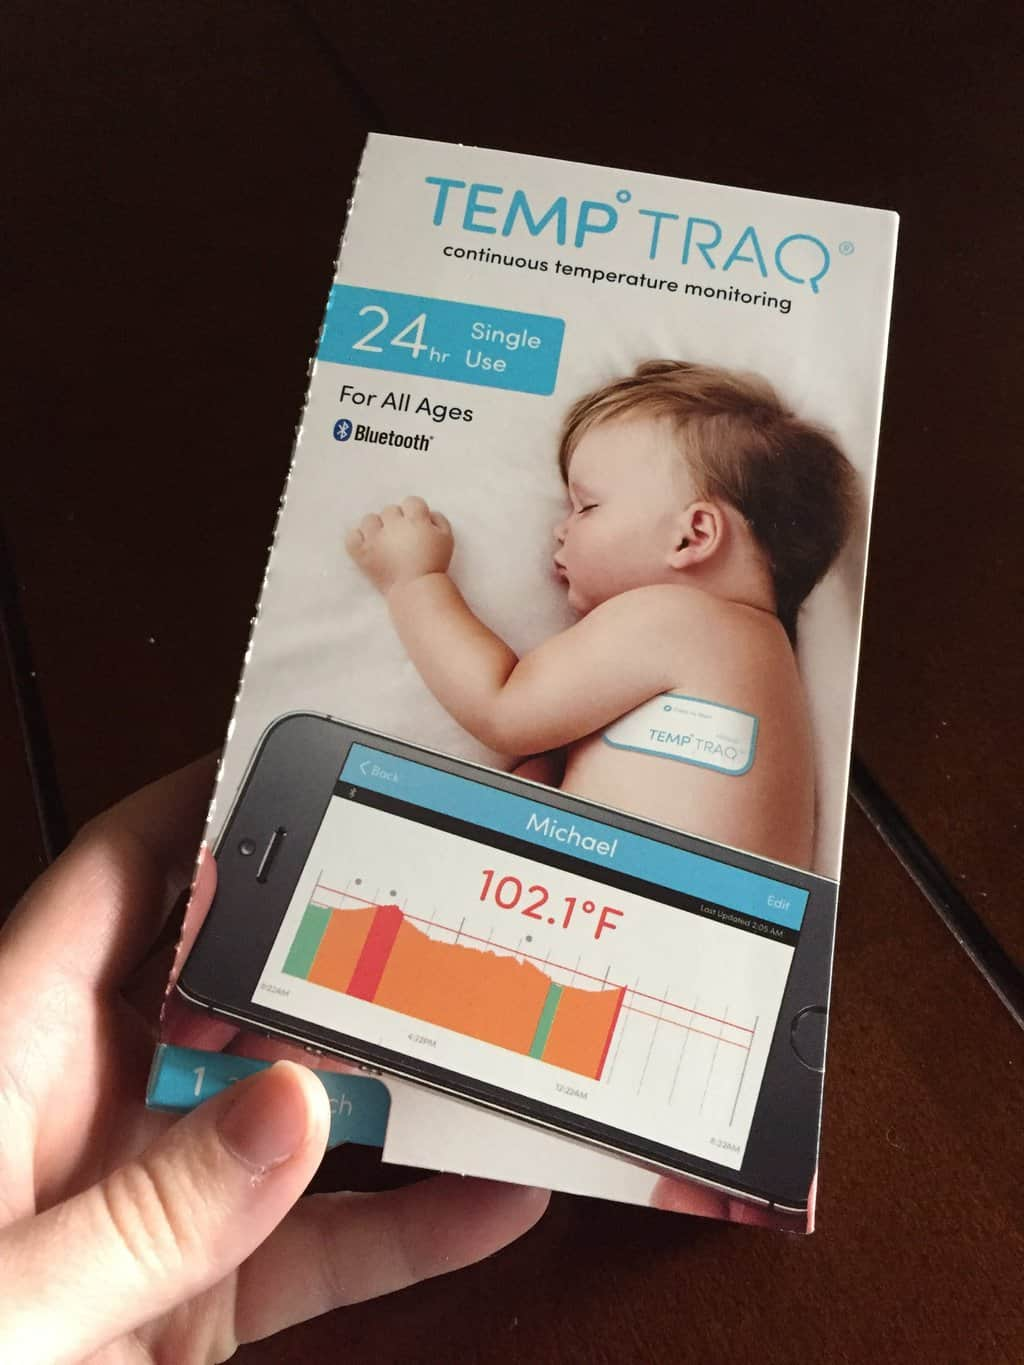 Sick kids? Get this genius must-have tools for moms to make caring for your sick baby or child so much easier! Find out more about this amazing wearable temperature monitor... read on!